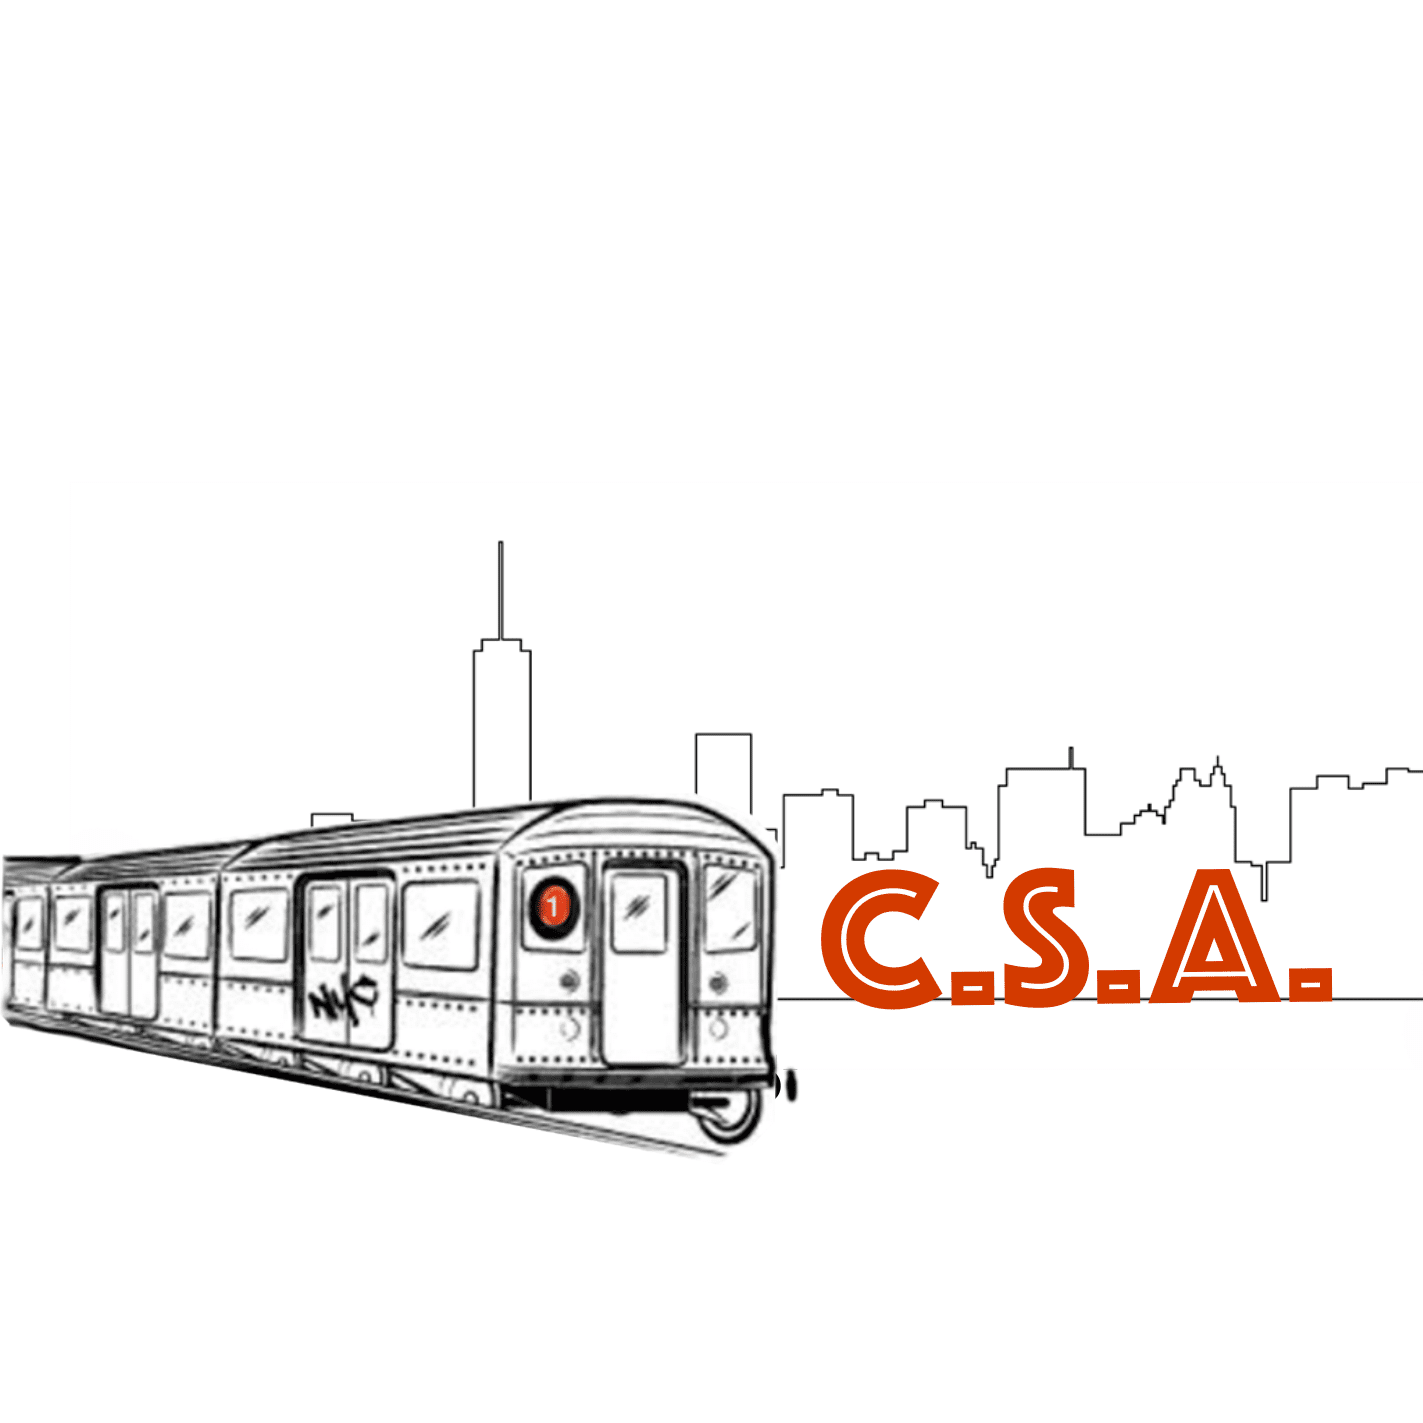 Commuter Student Association- 1 train